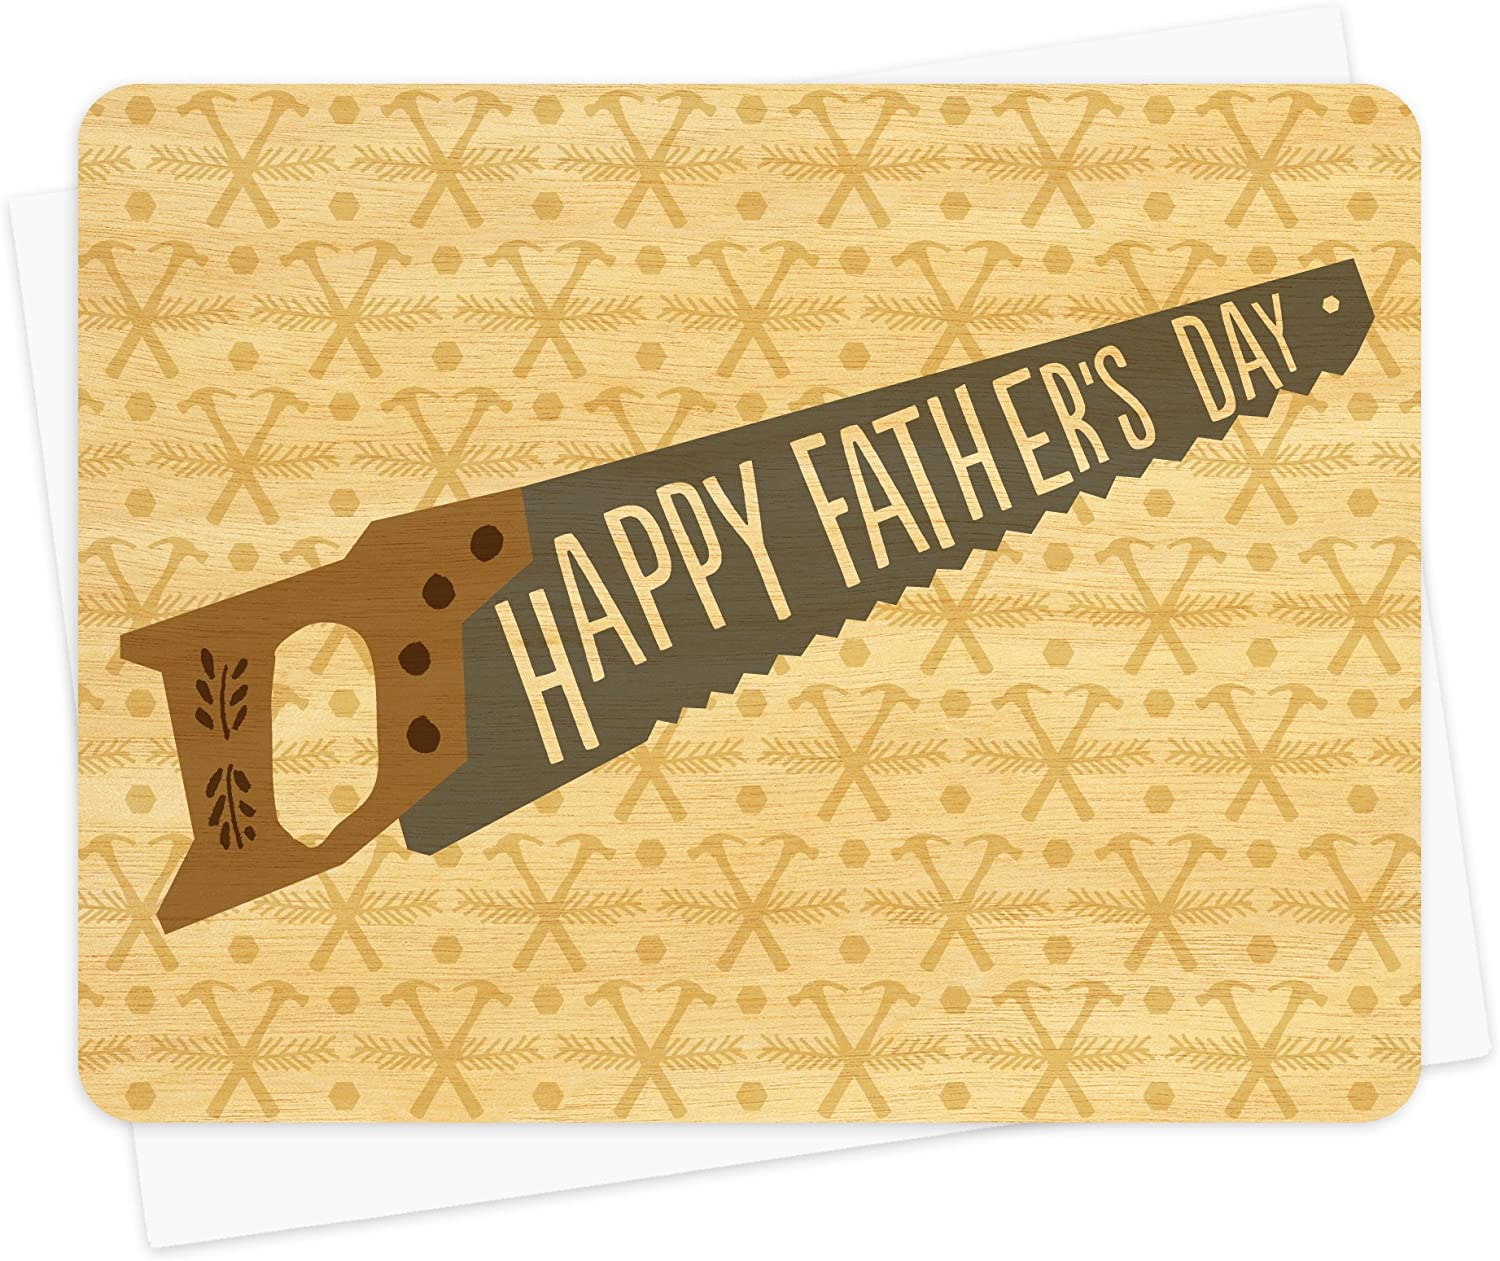 Year-end annual Credence account Tool Time Wood Father's Day Card Paper Goods Night Owl by